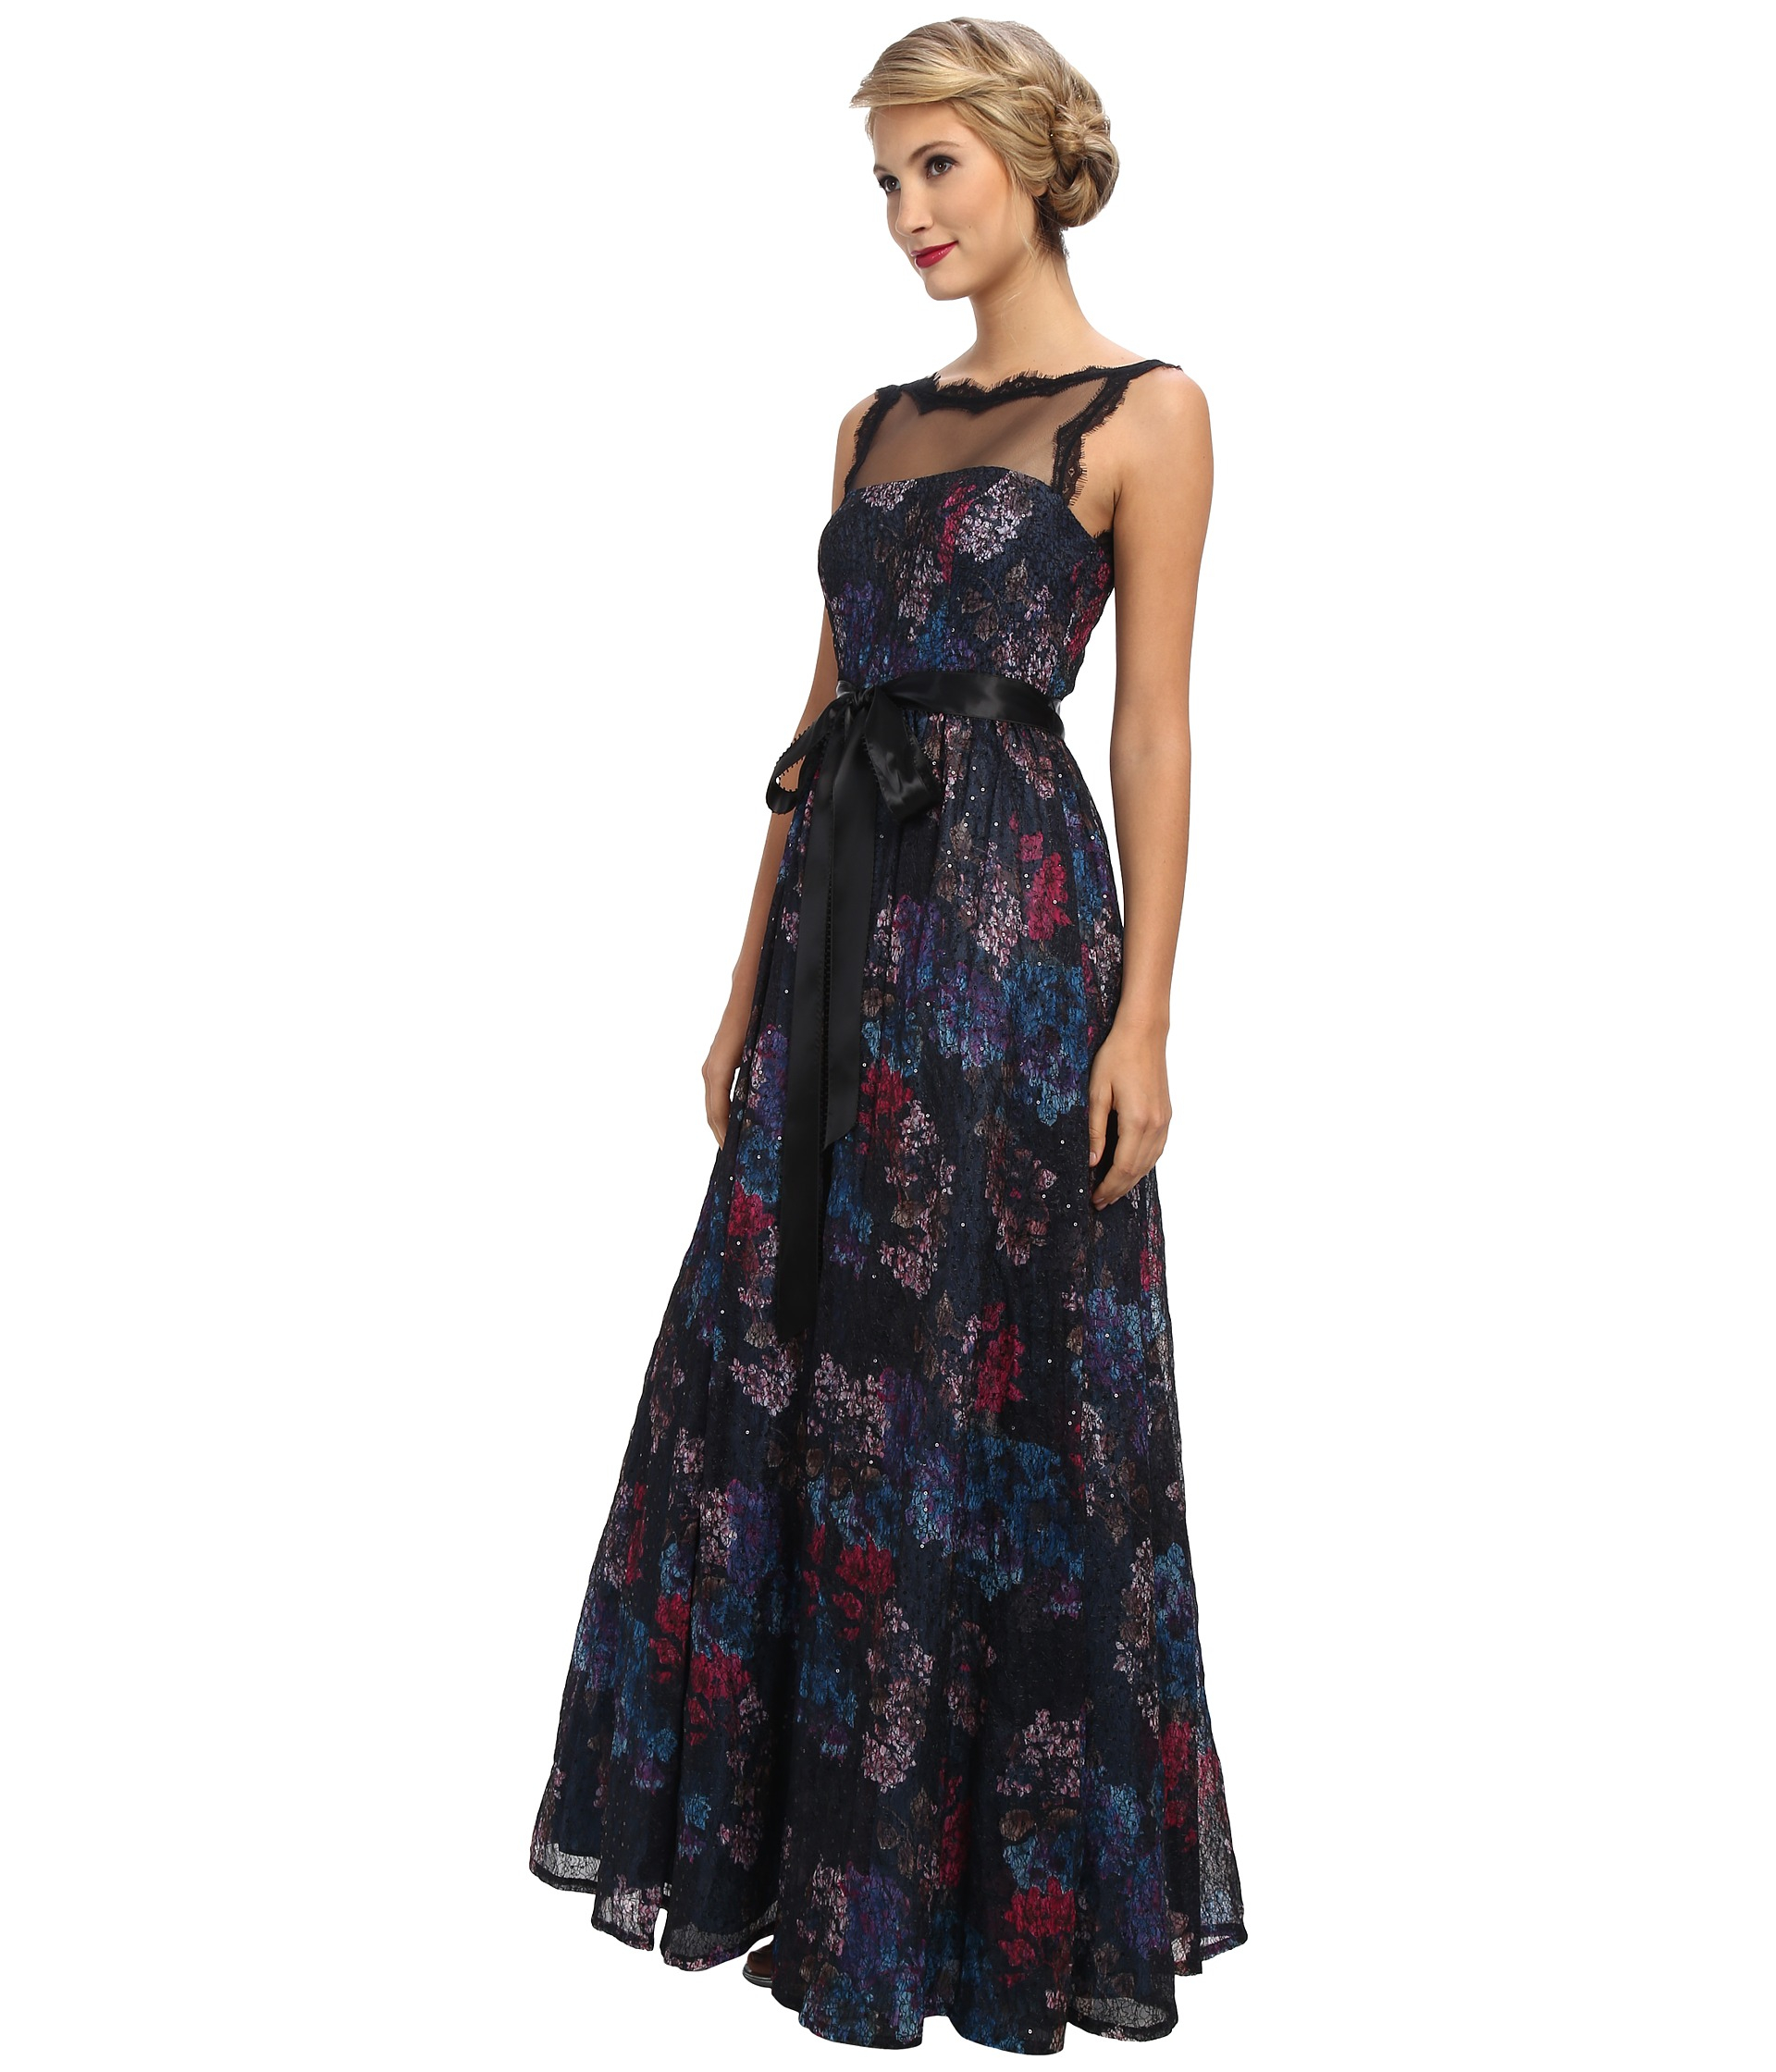 Lyst - Adrianna Papell Illusion Bodice Ball Gown in Blue